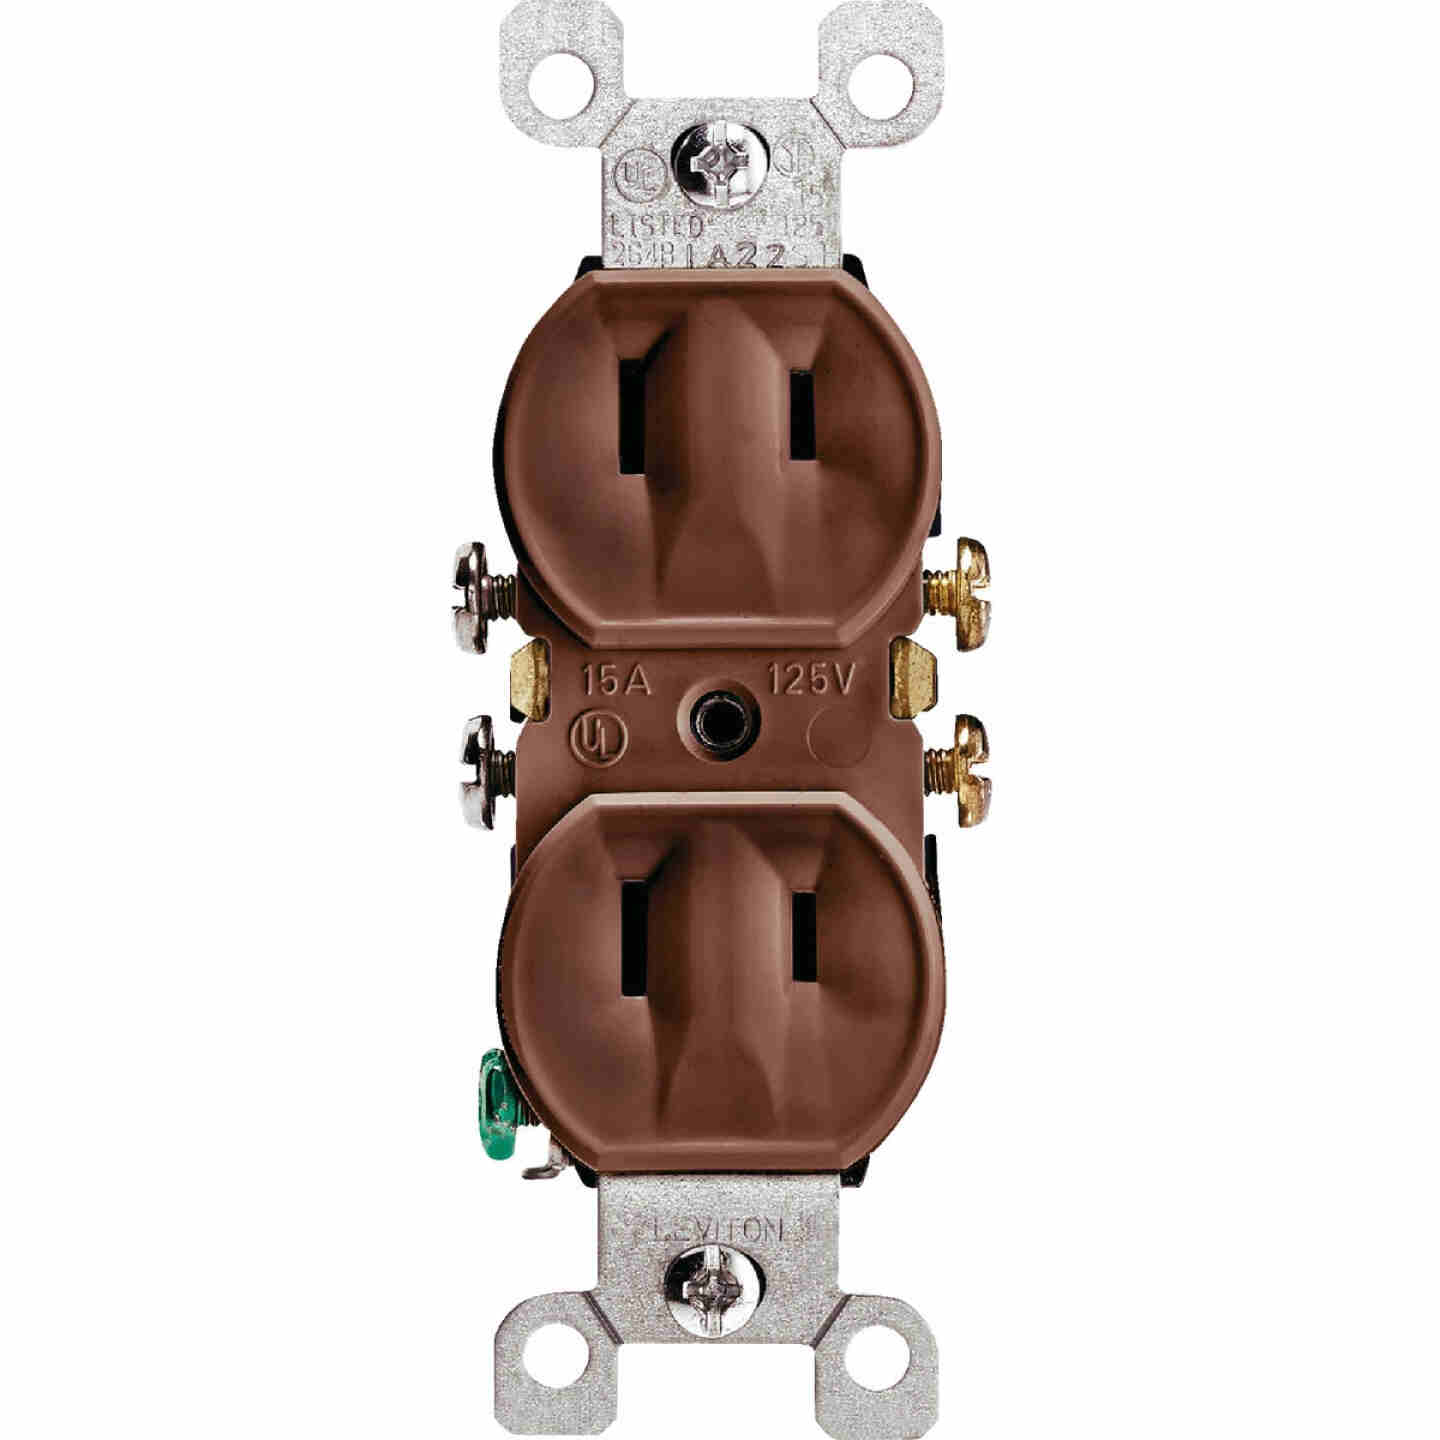 Leviton 15A Brown Residential Grade 1-15R Duplex Outlet Image 2